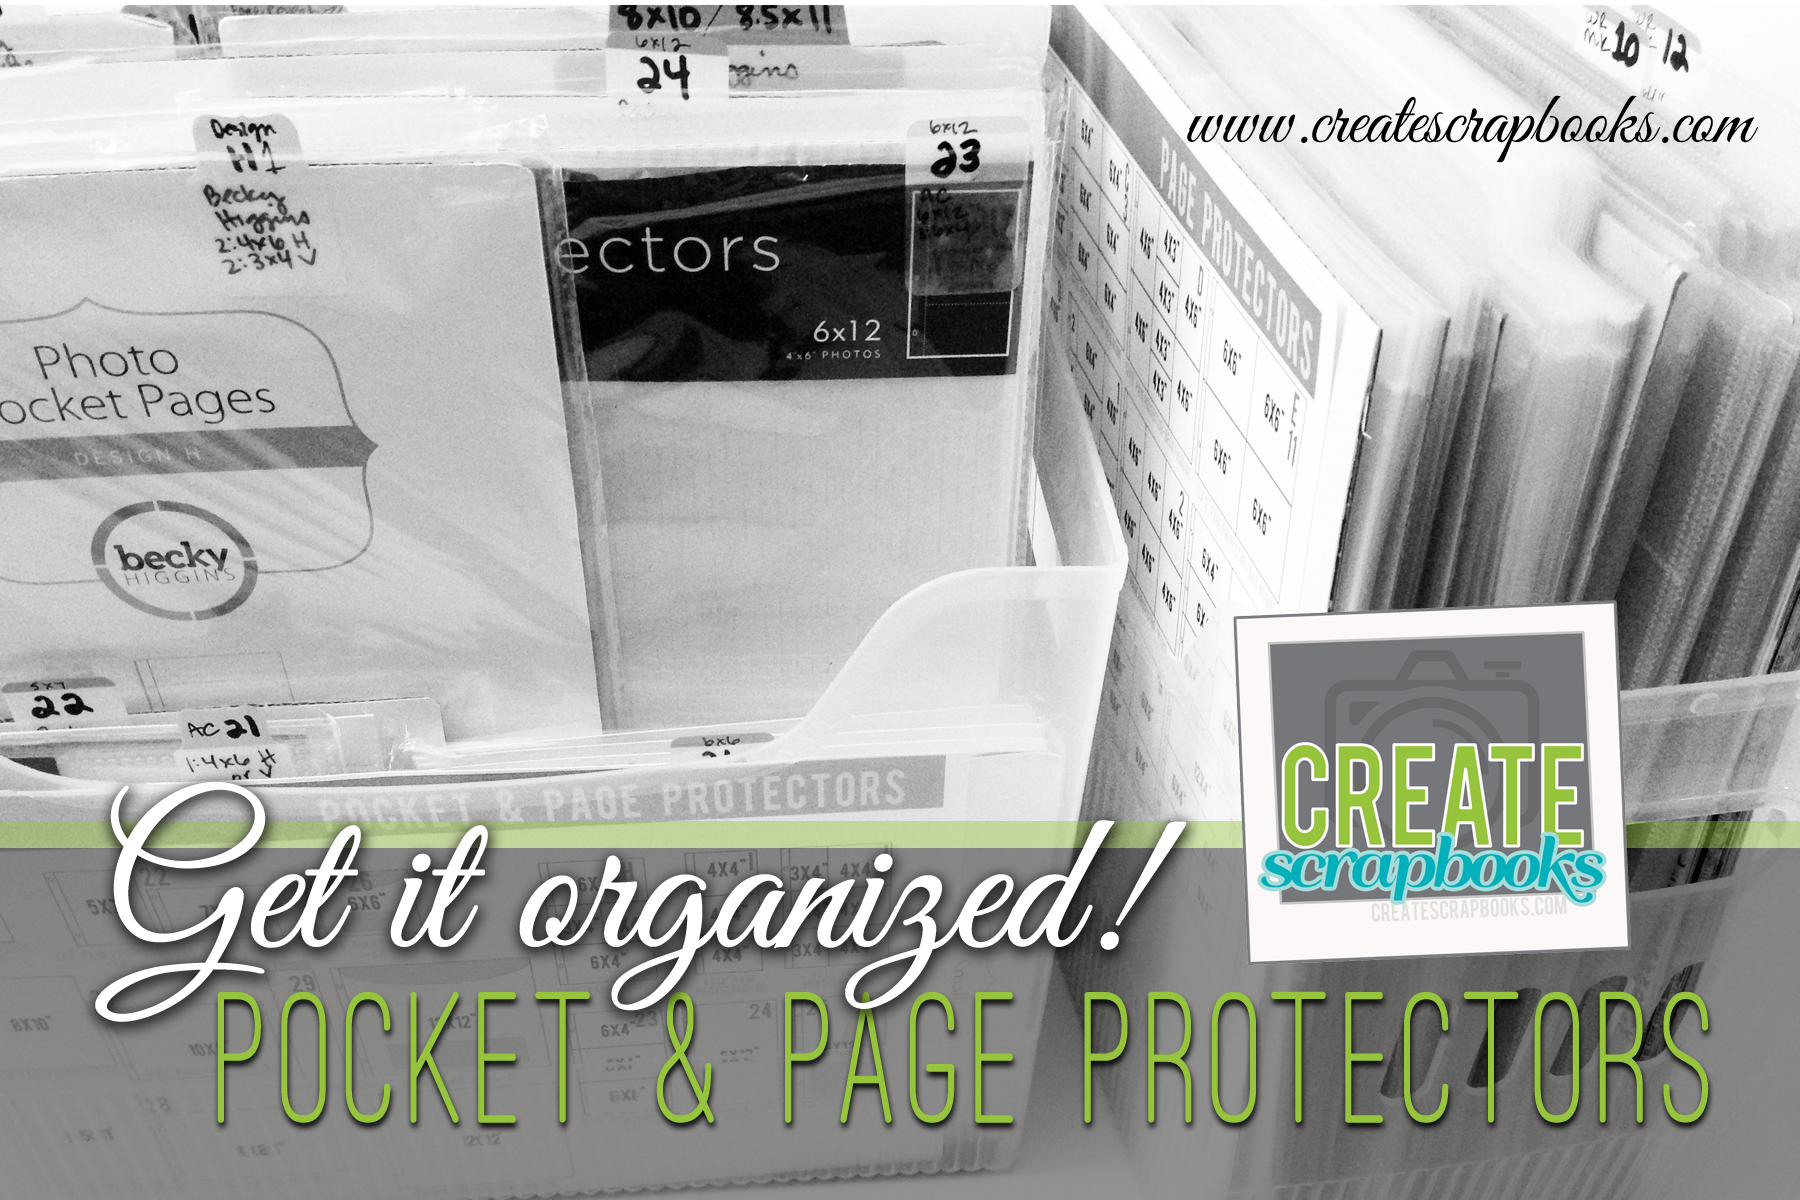 Ready to get your Project Life Pocket and Page Protectors organized? Check out this method with FREE printables to get you started from CreateScrapbooks.com